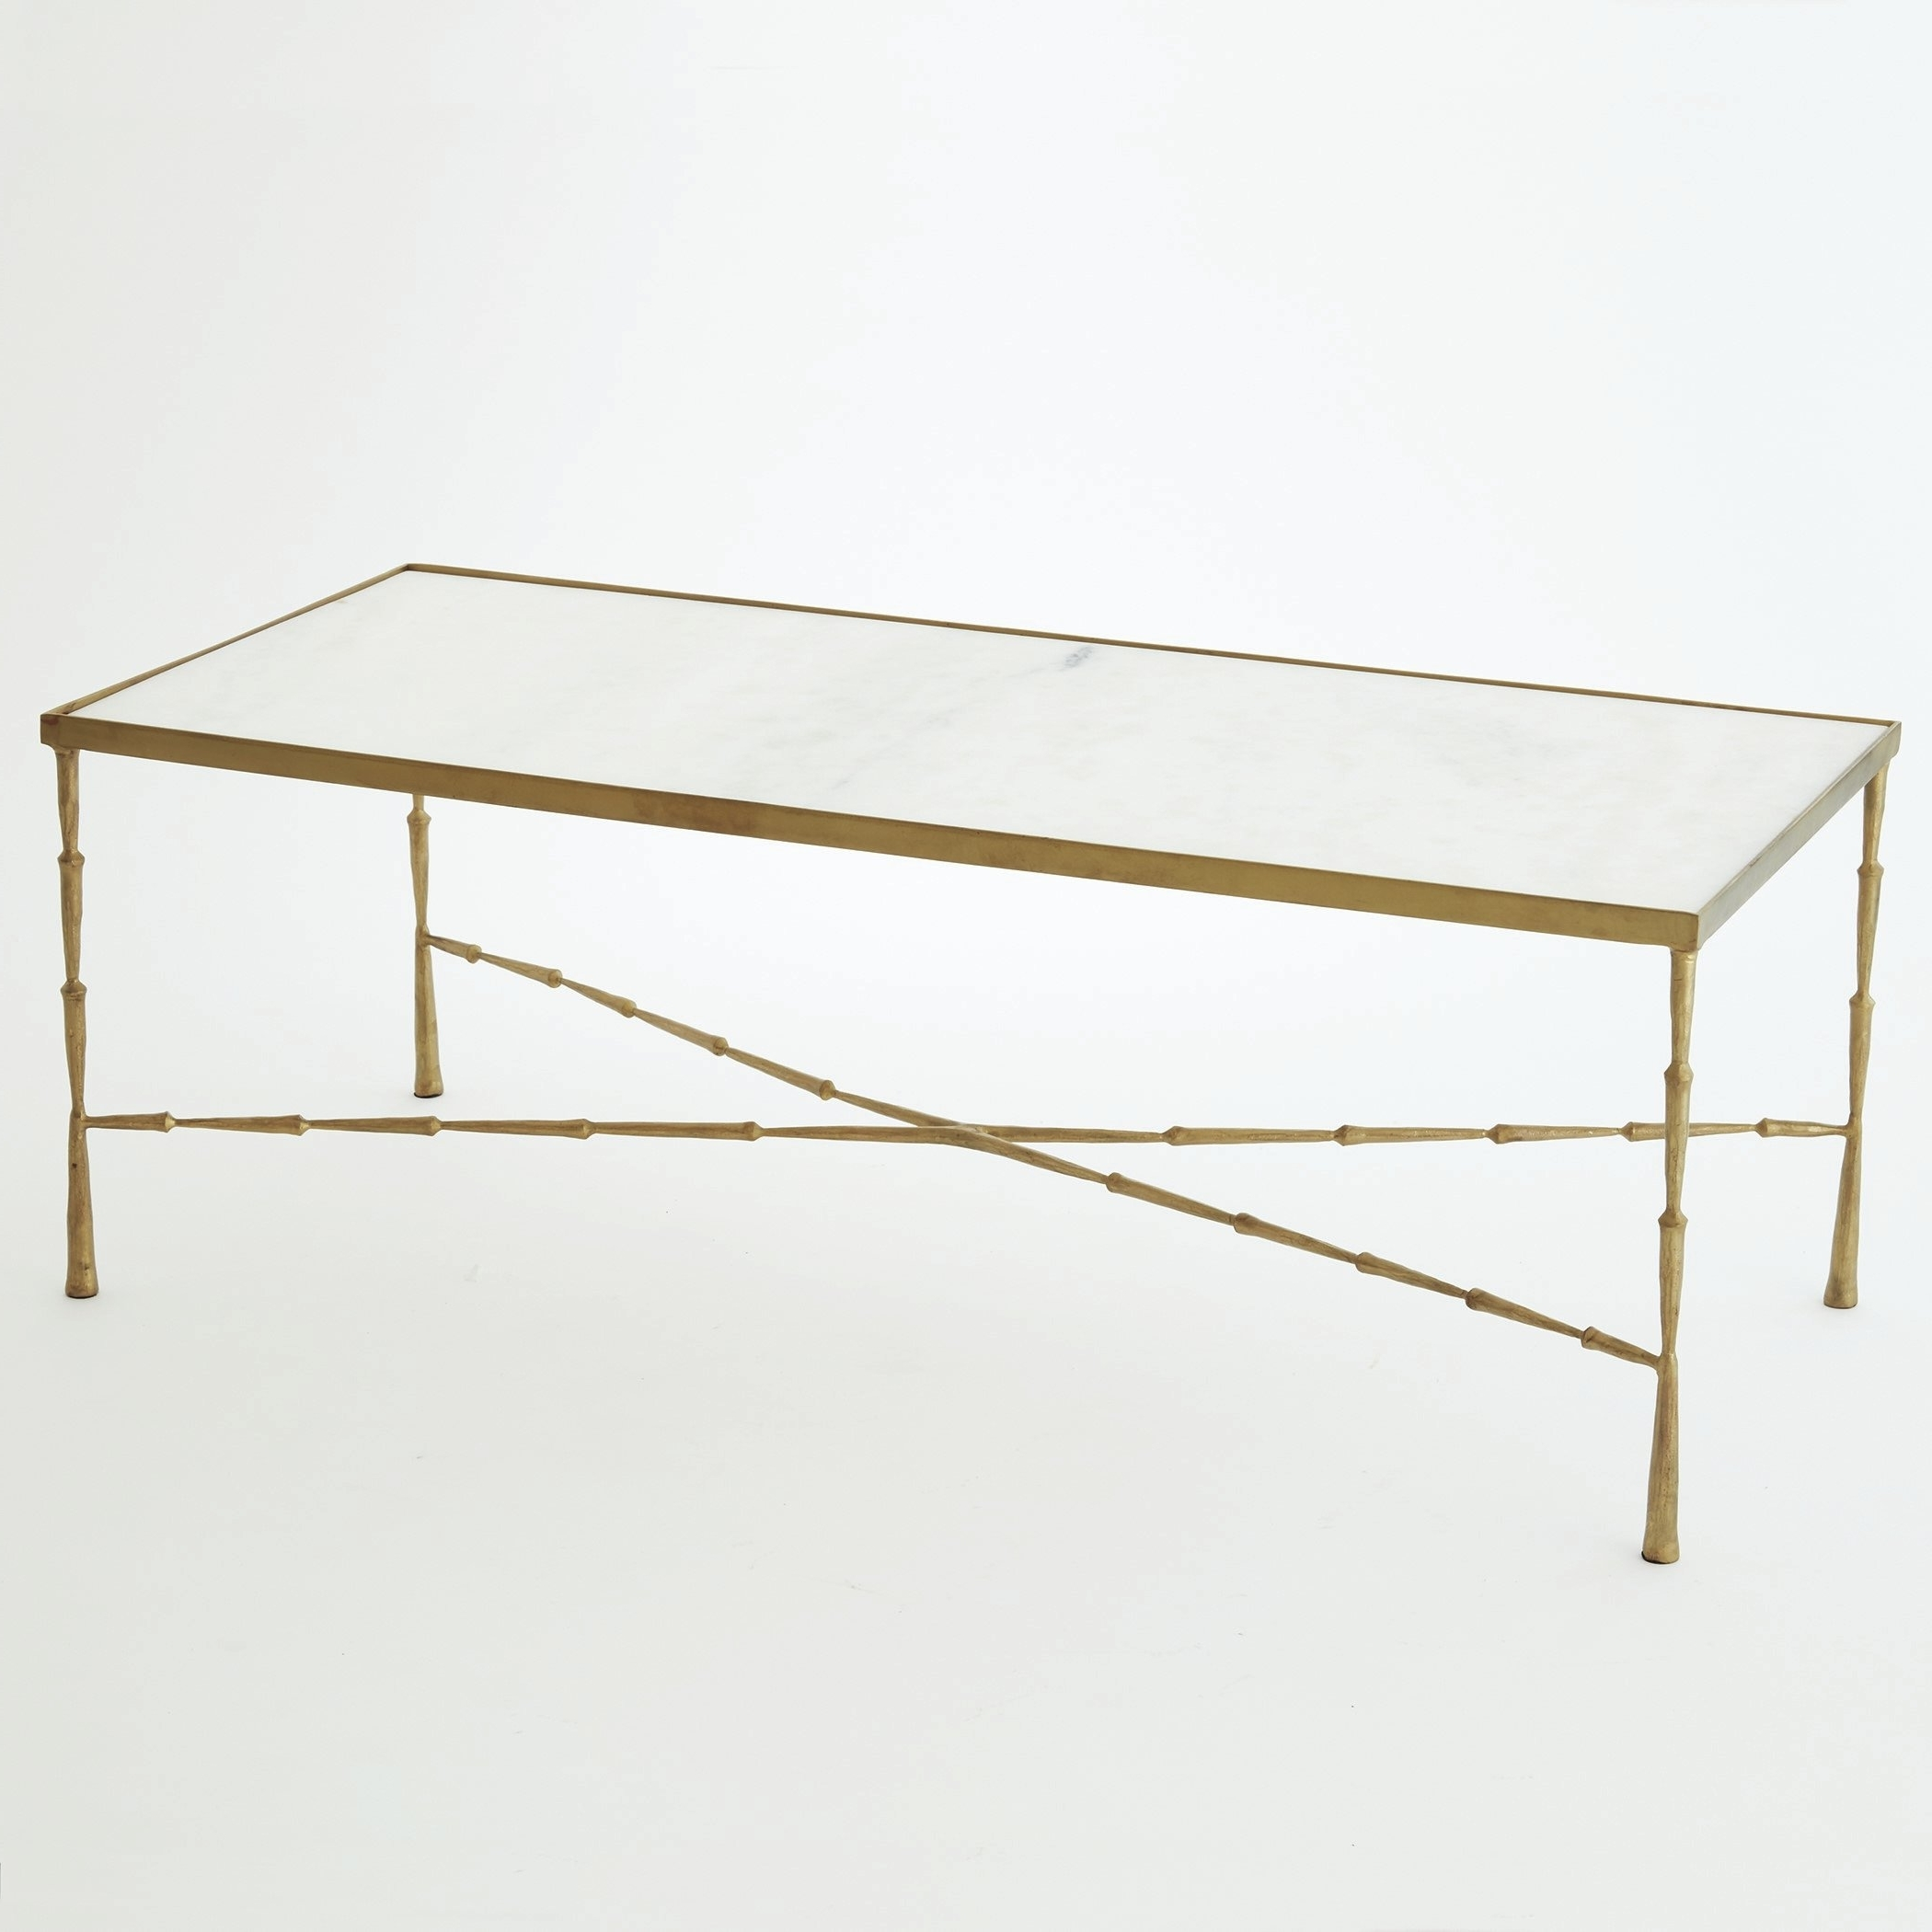 Wayfair Intended For Most Up To Date Iron Marble Coffee Tables (View 17 of 20)